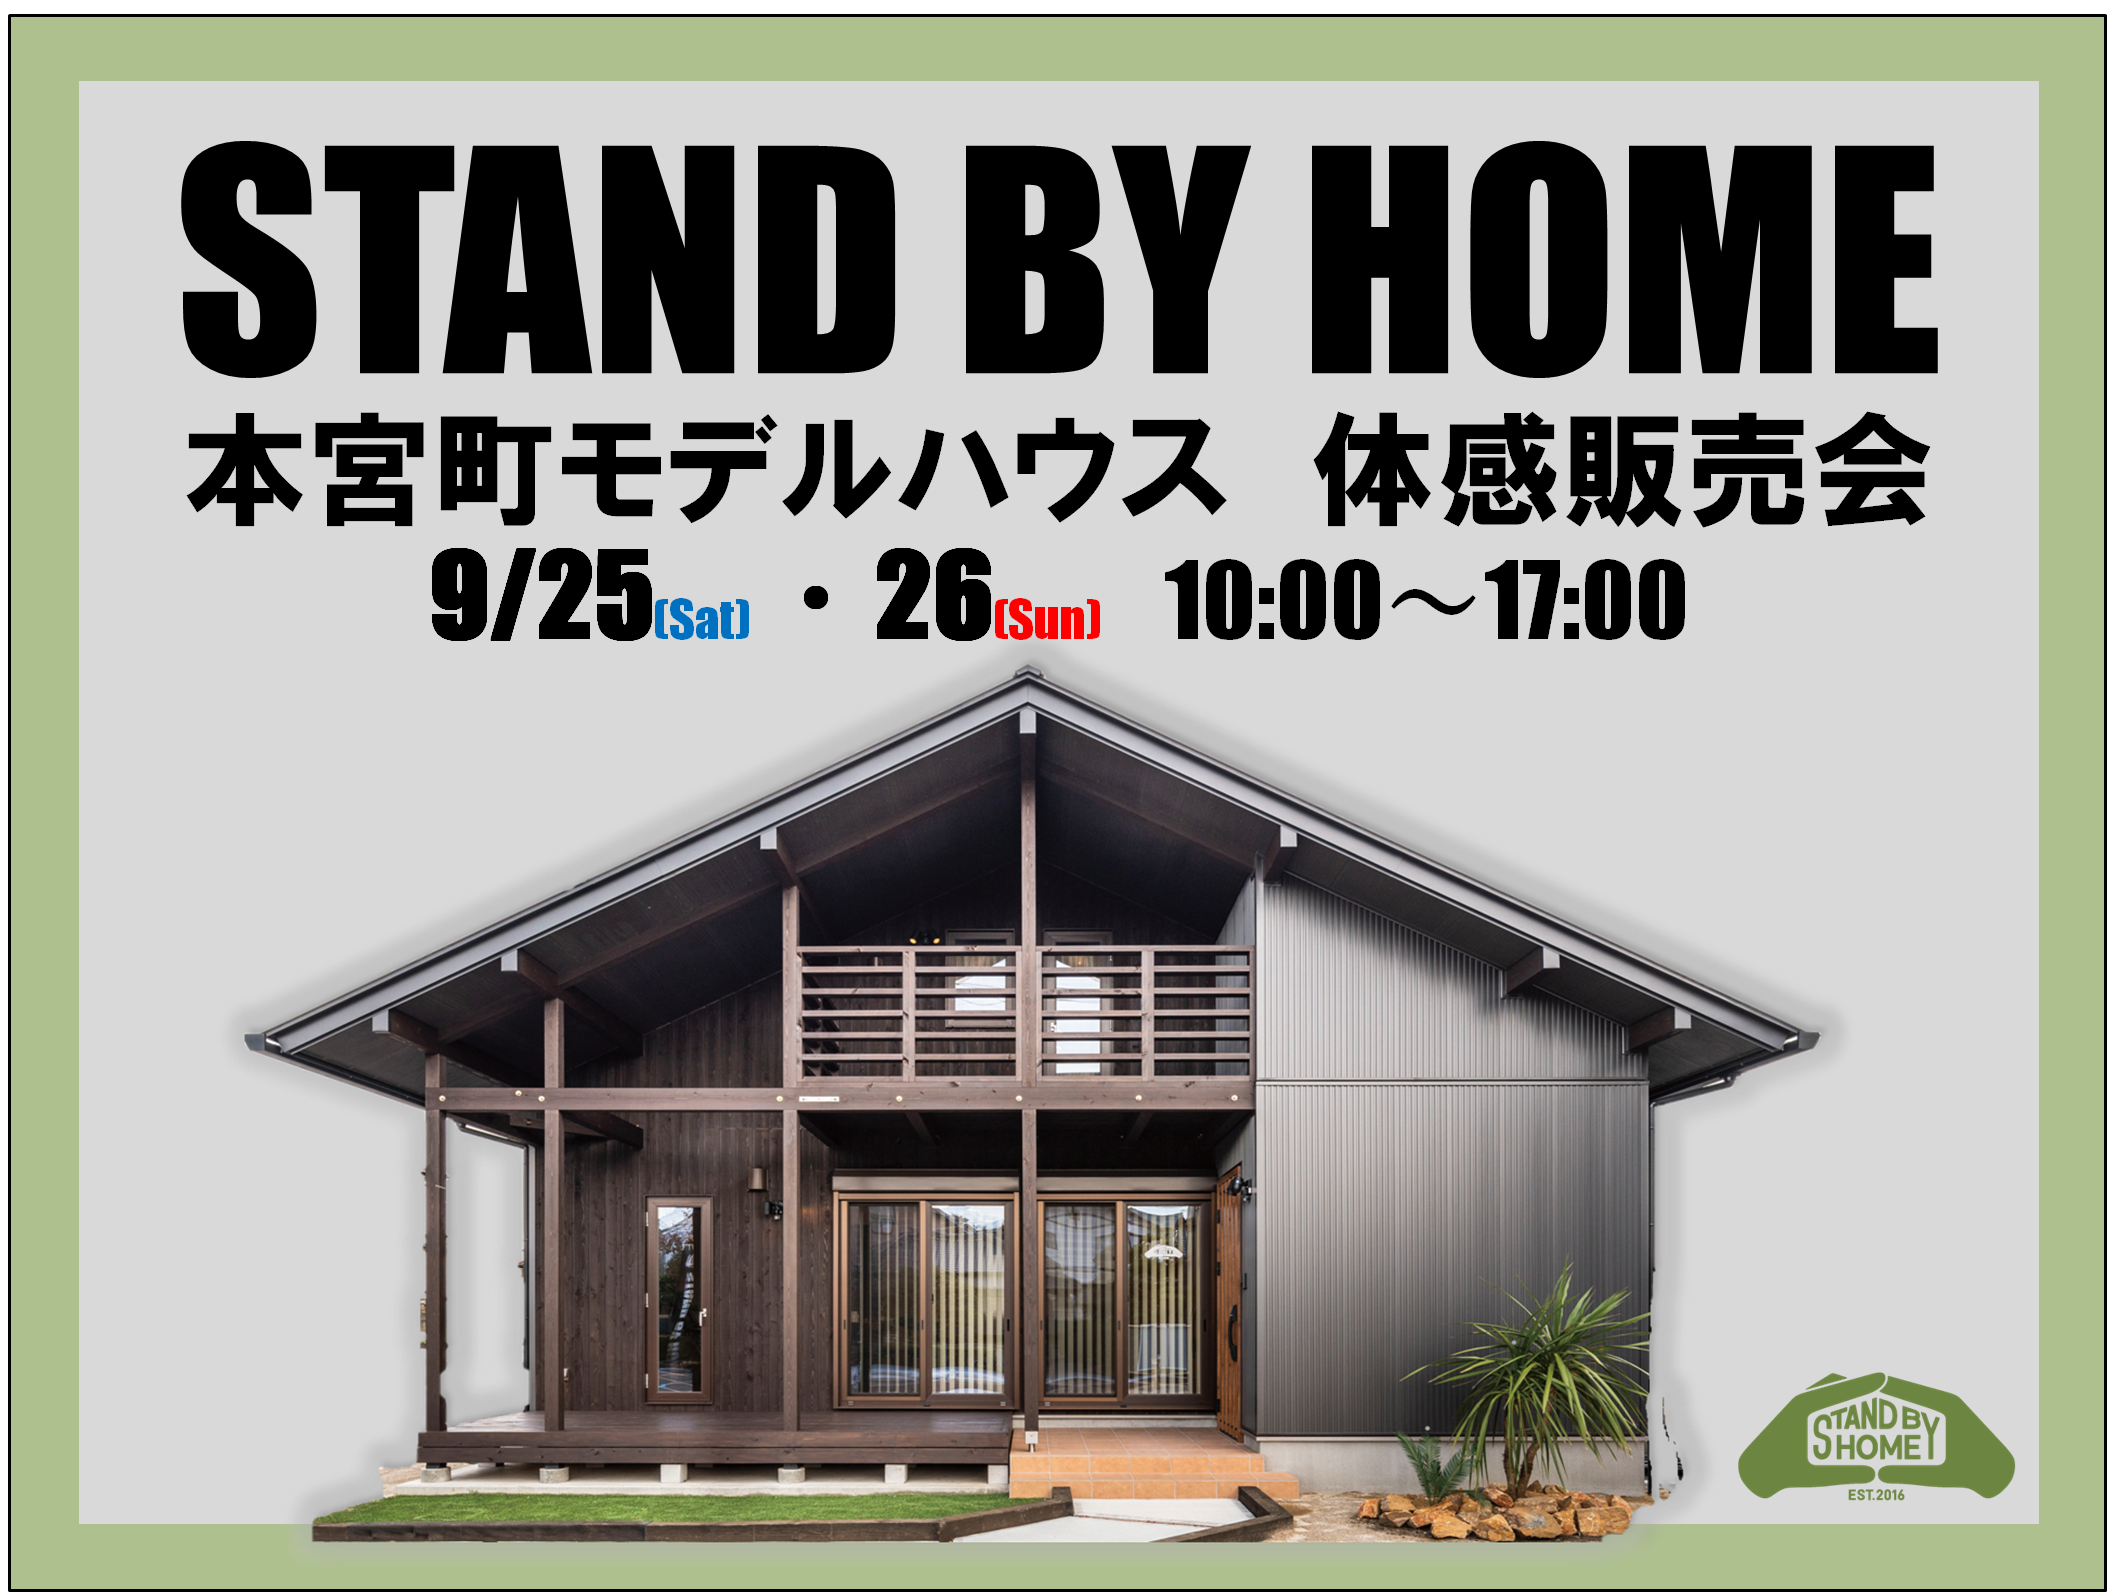 STAND BY HOME 本宮町モデルハウス 体感販売会